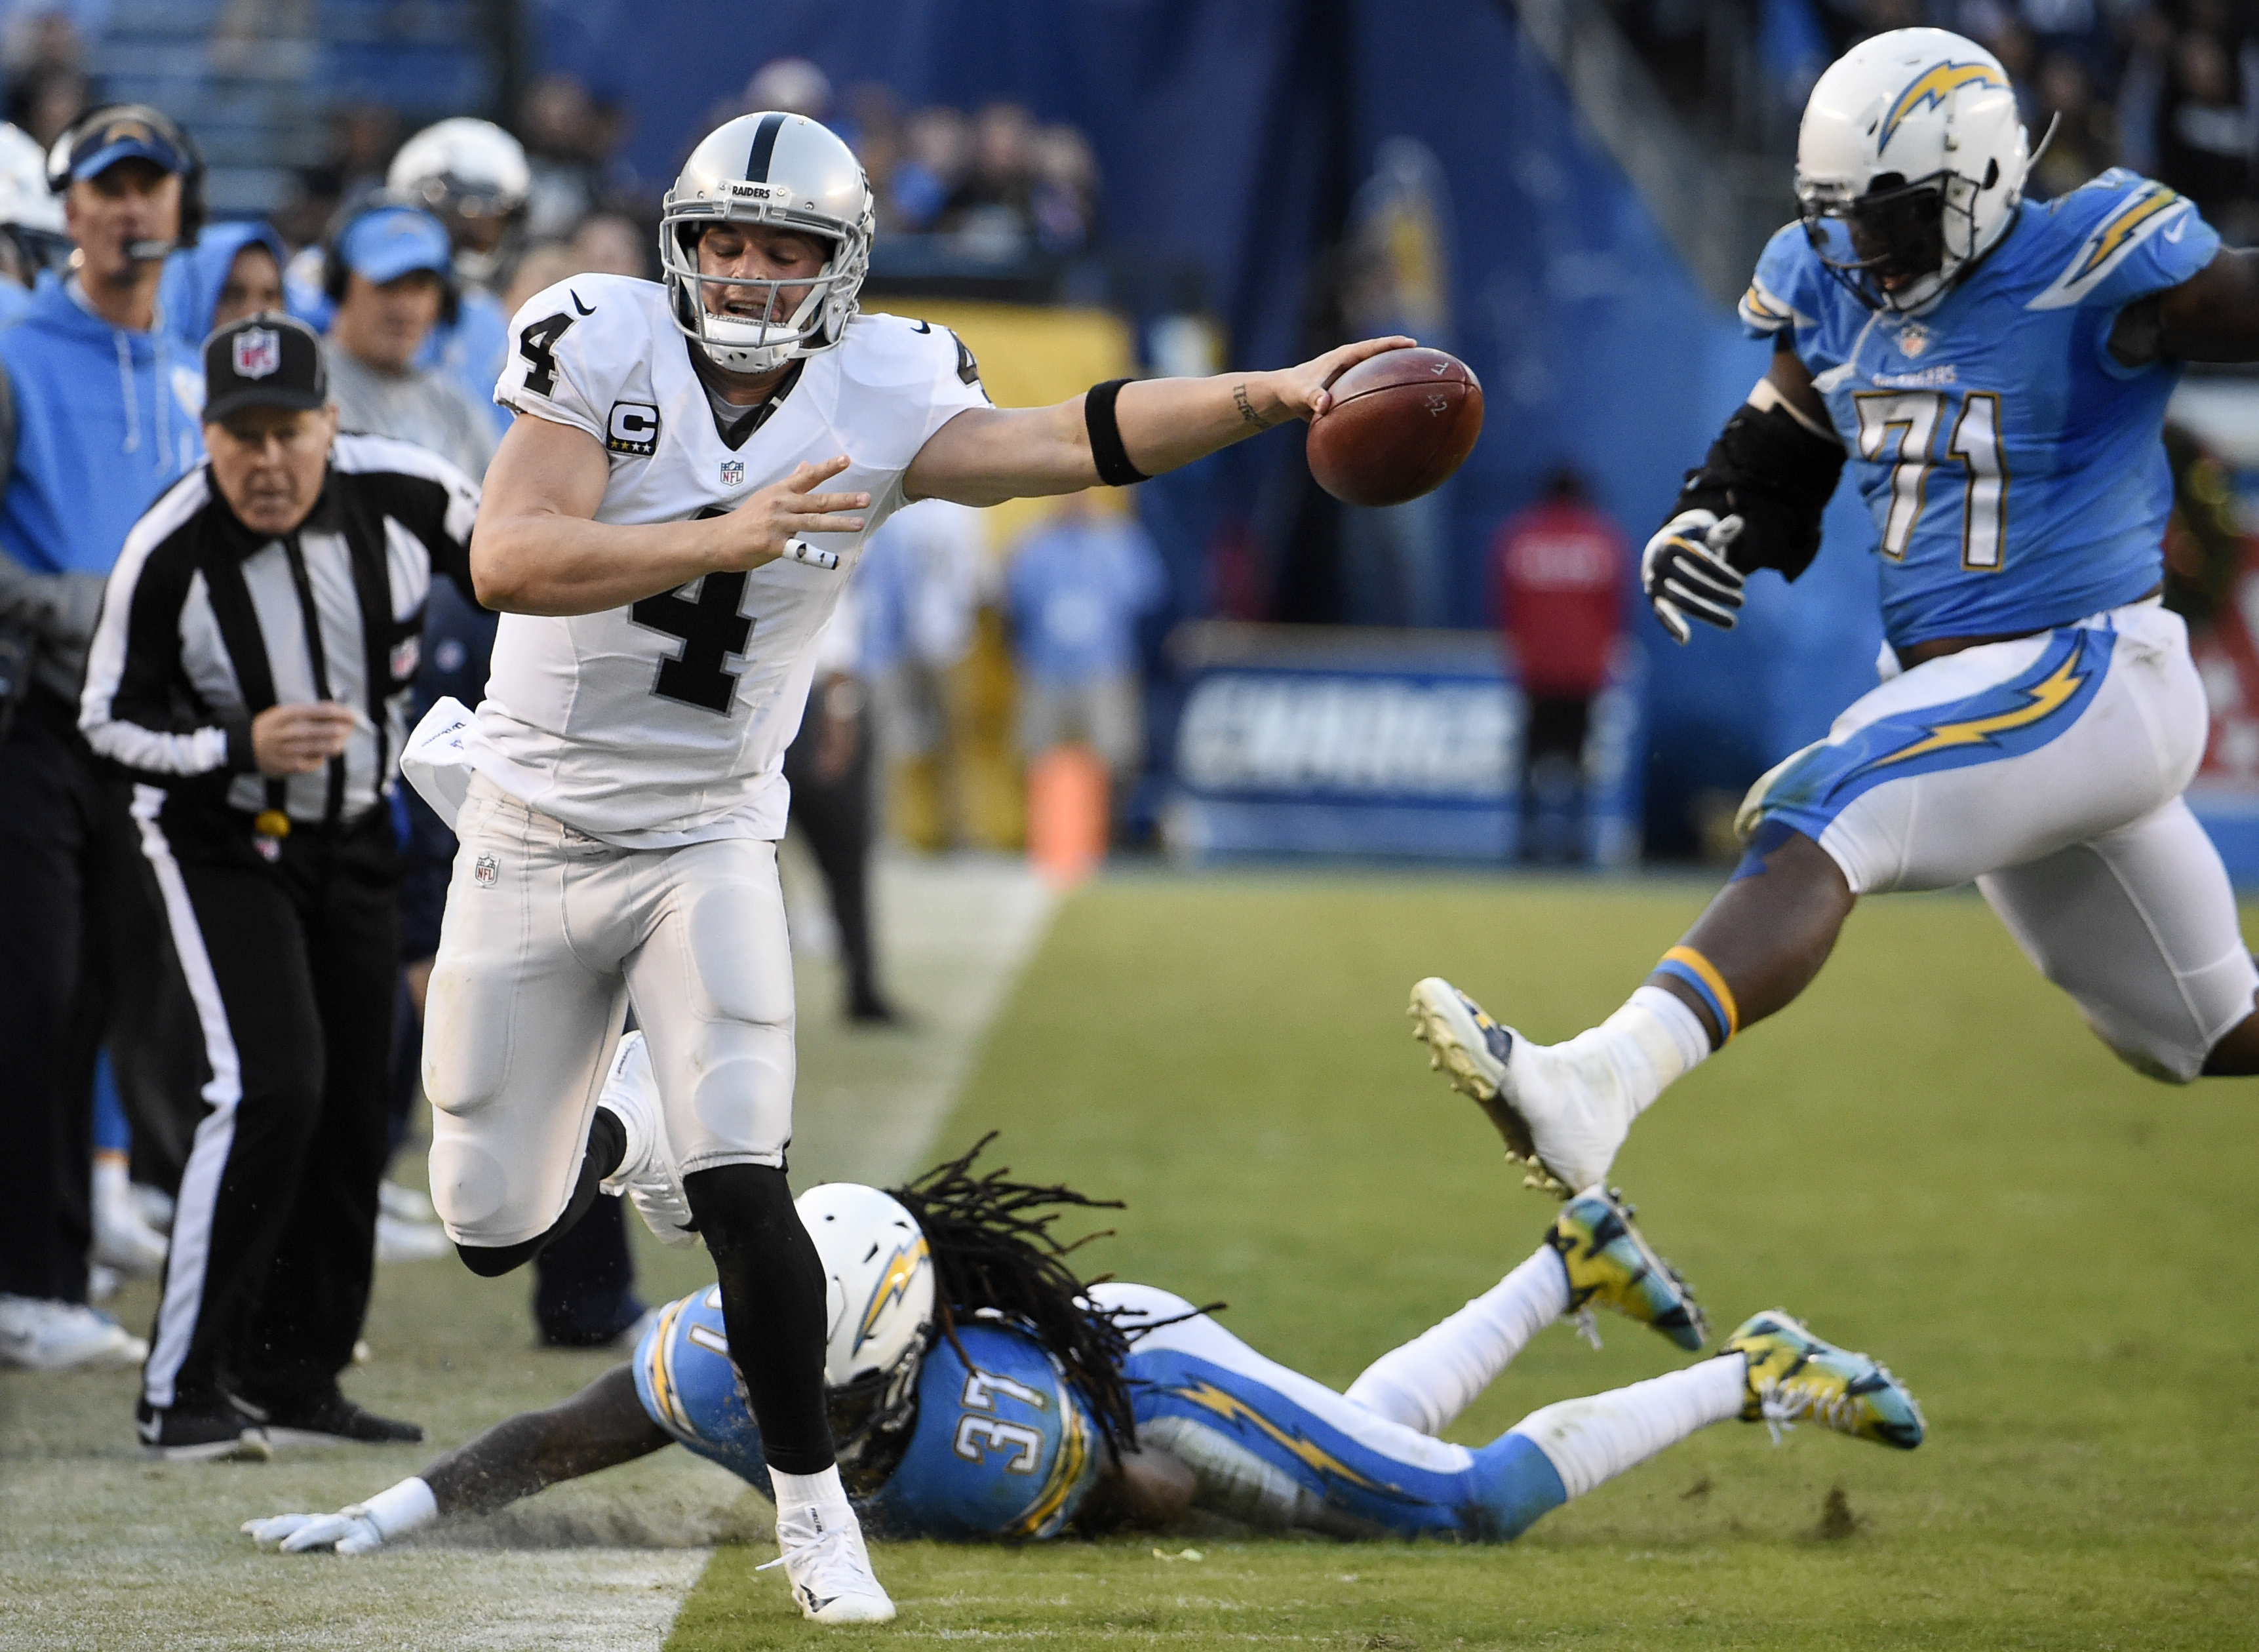 Oakland Raiders quarterback Derek Carr (4) reaches for a first down before going out of bounds as San Diego Chargers strong safety Jahleel Addae (37) and defensive tackle Kaleb Eulls (71) defend during the second half of an NFL football game Sunday, Dec.